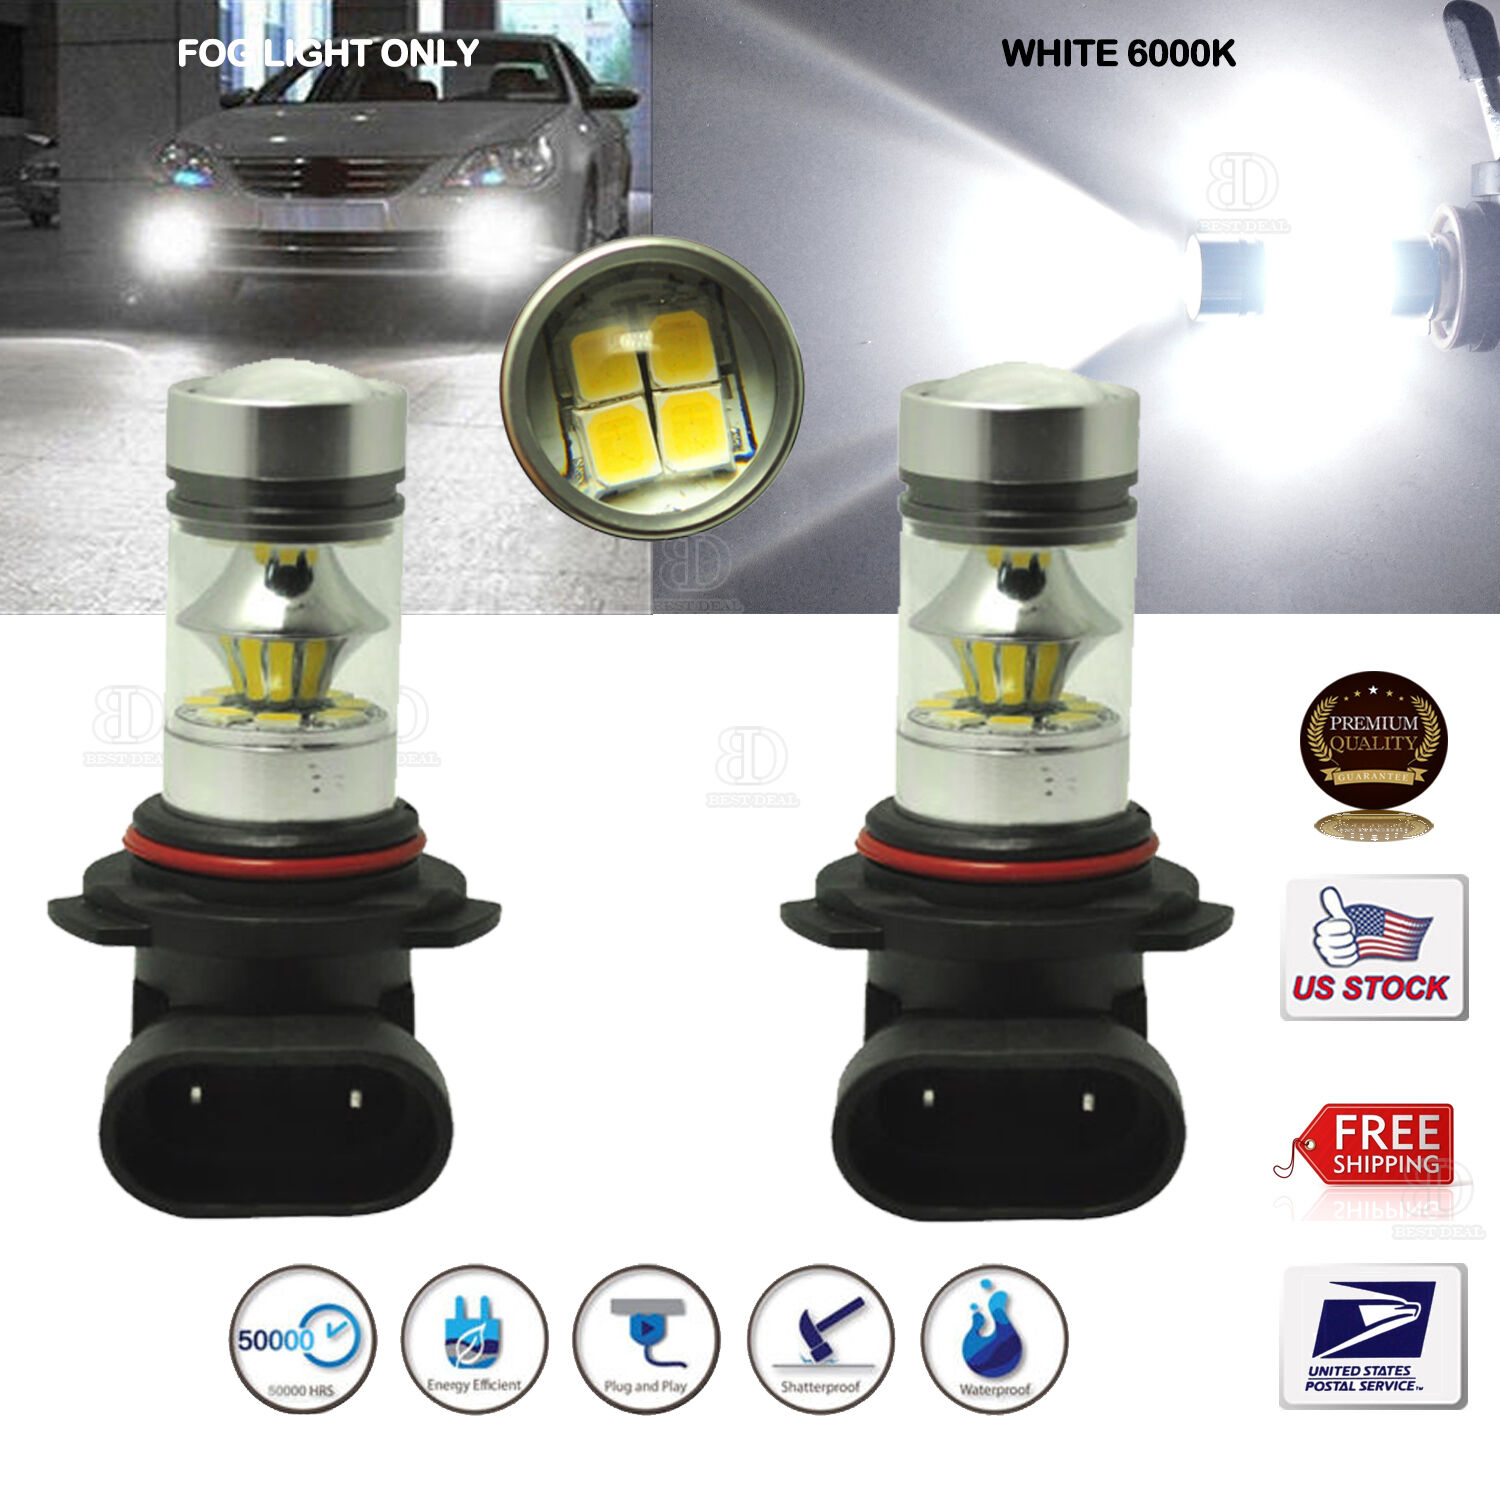 lamp leds led product pair super bulbs alla fog light shop power white high